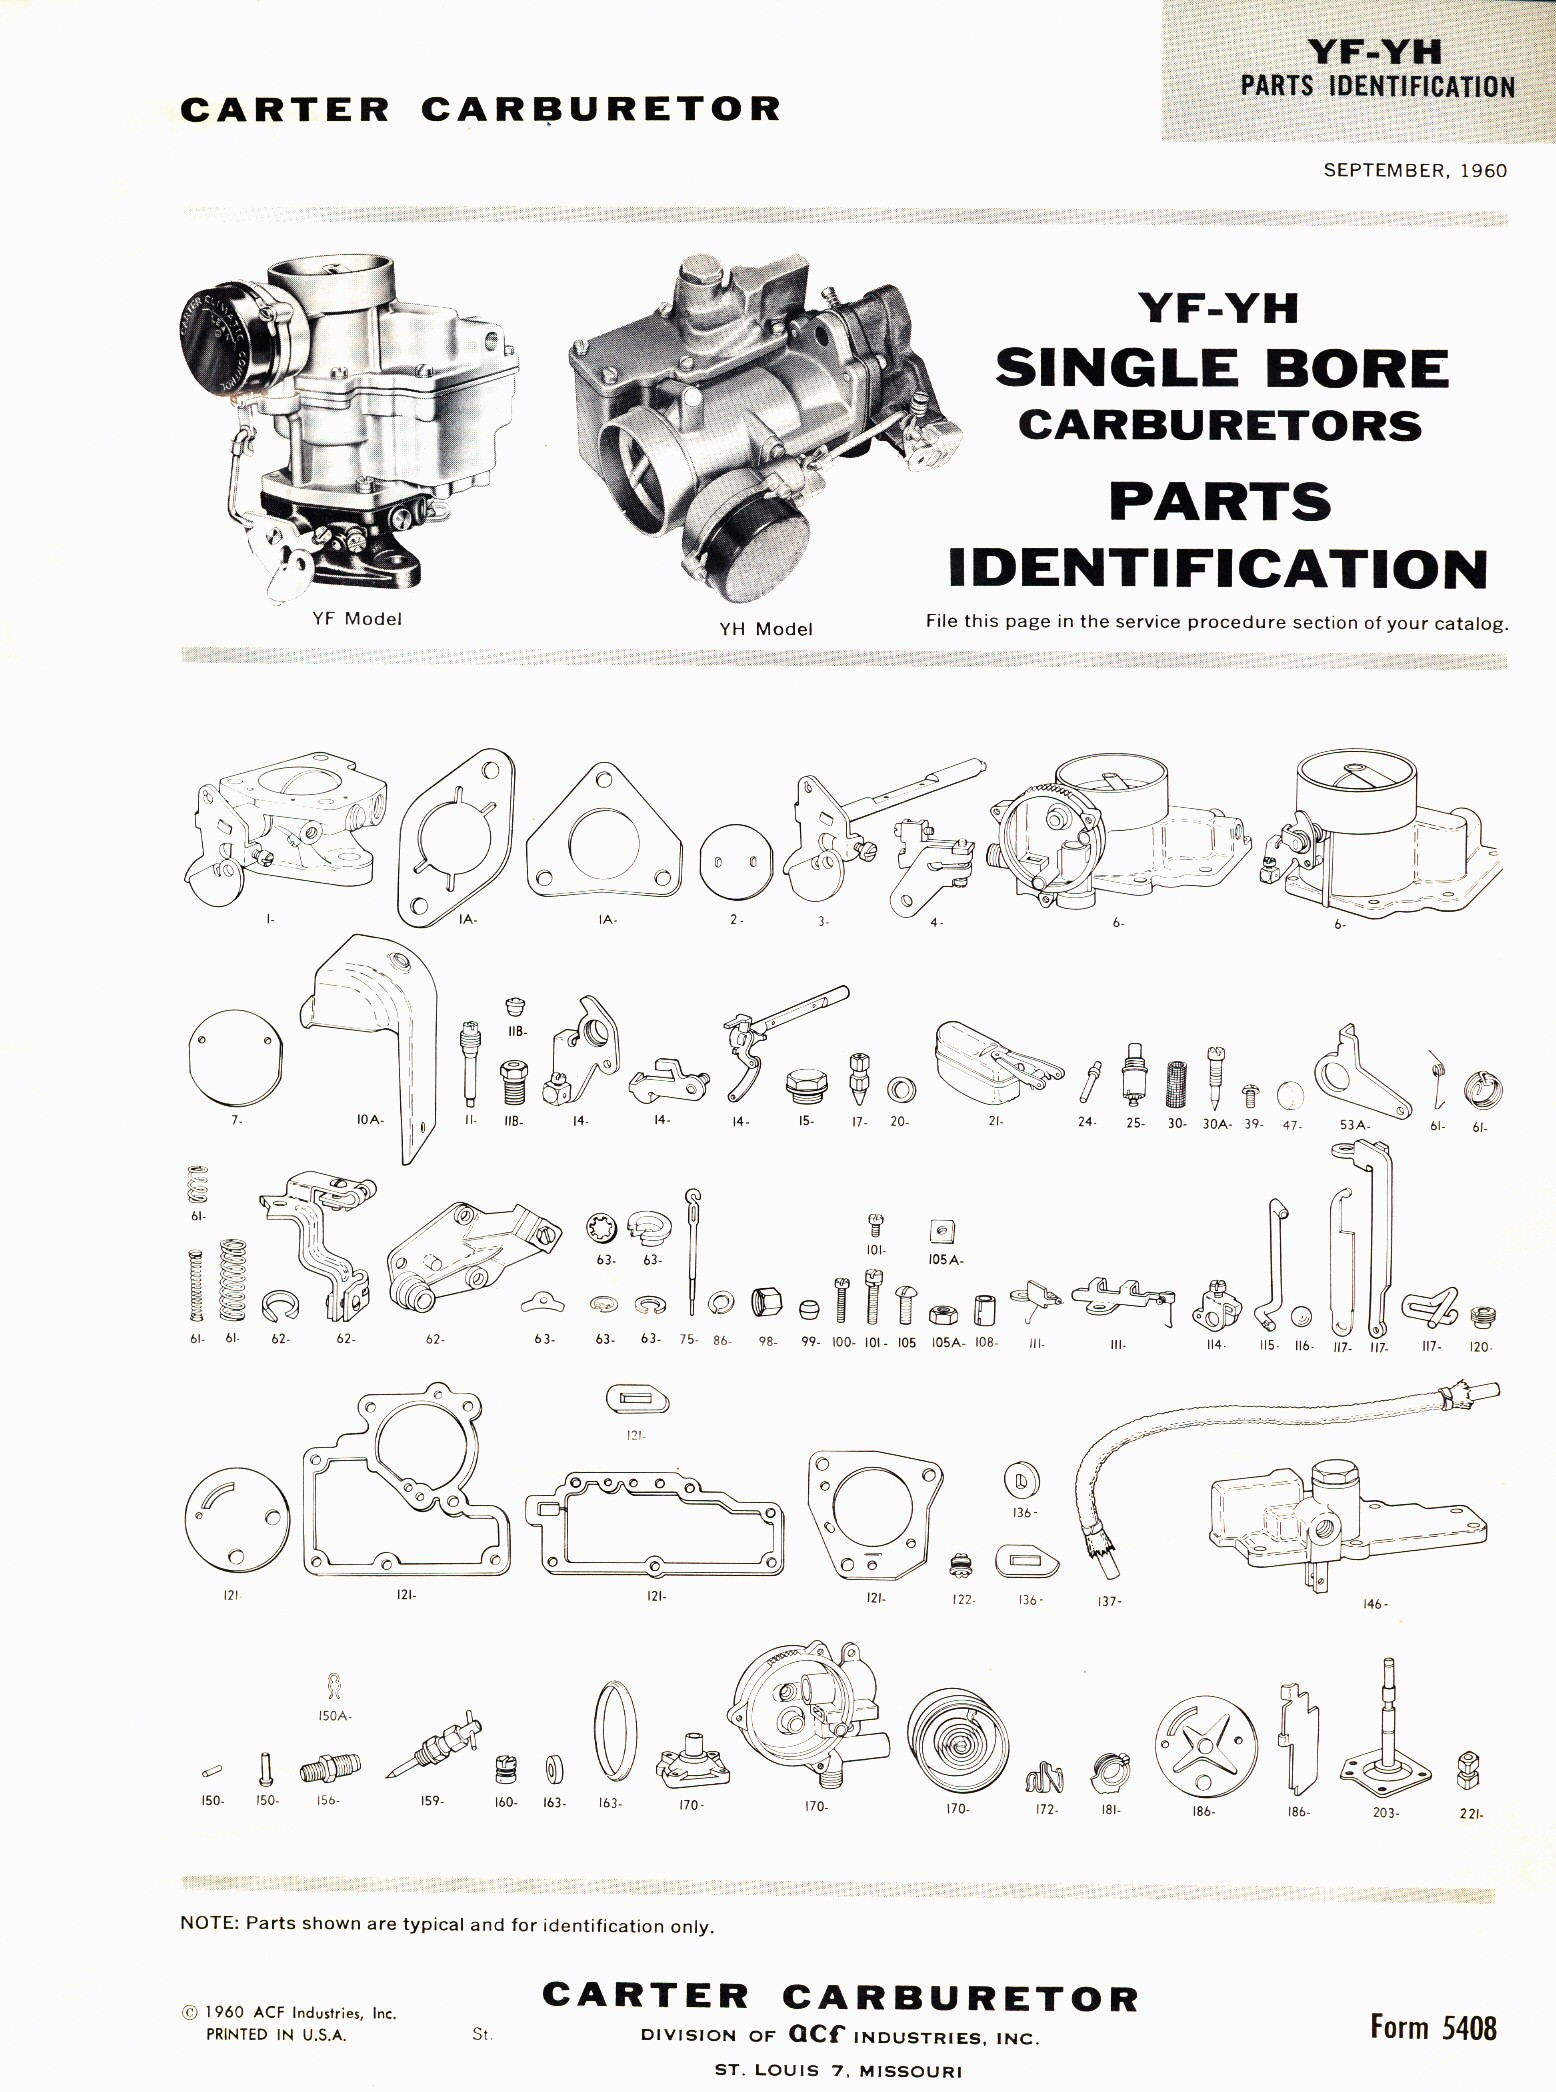 Honda Small Engine Carburetor Diagram Carter Y Yf Yfa Yh Ys the Carburetor Doctor Of Honda Small Engine Carburetor Diagram Craftsman Riding Mower Electrical Diagram